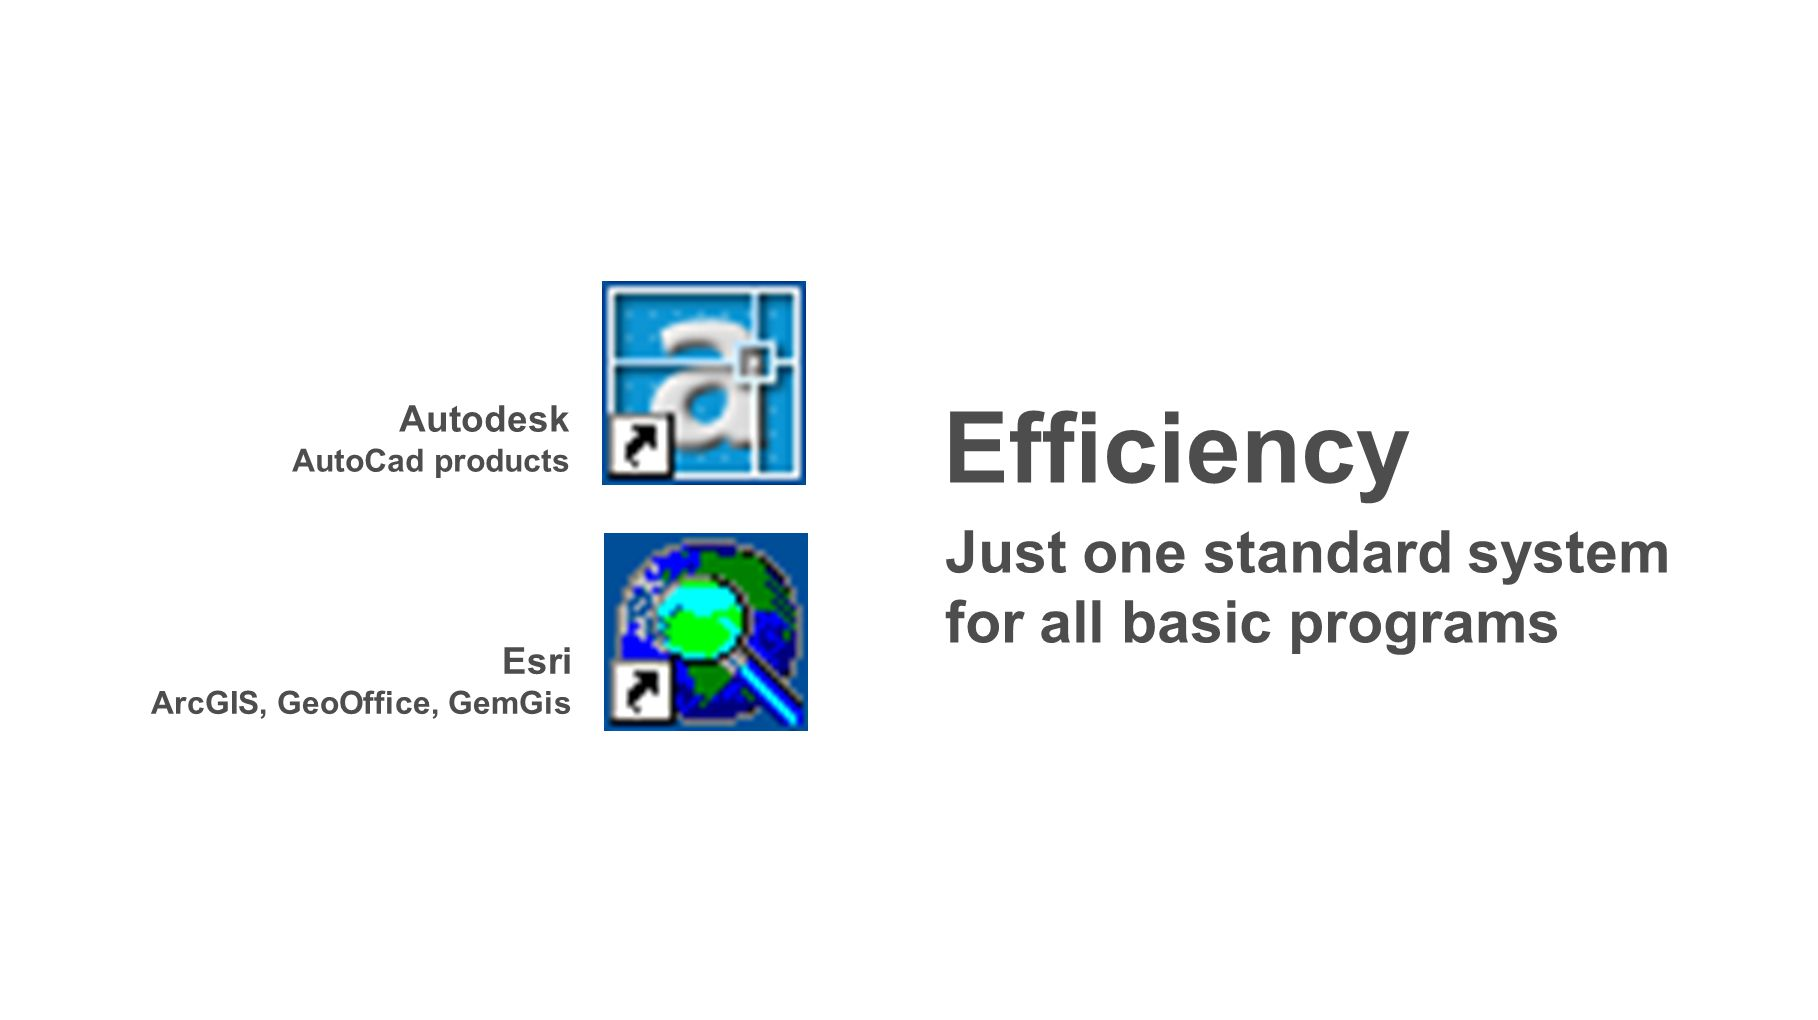 Just one standard system for all basic programs Autodesk AutoCad products Esri ArcGIS, GeoOffice, GemGis